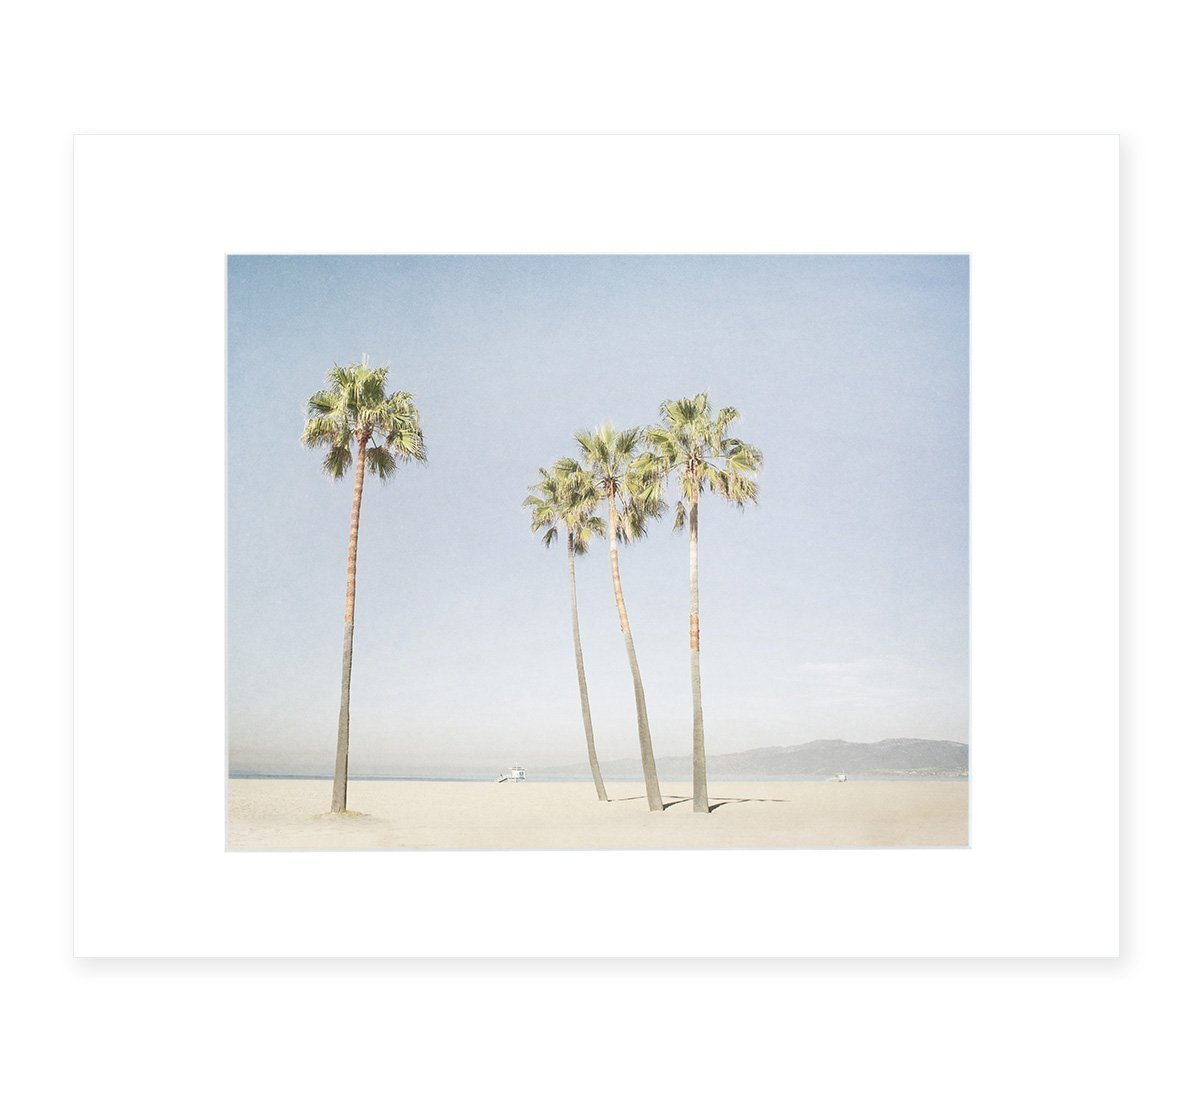 California Wall Art, Venice Beach Palm Tree Art, Santa Monica Coastal Wall Decor, Tropical Beach Picture, 8x10 Matted Photographic Print (fits 11x14 frame), 'Boardwalk Palms'